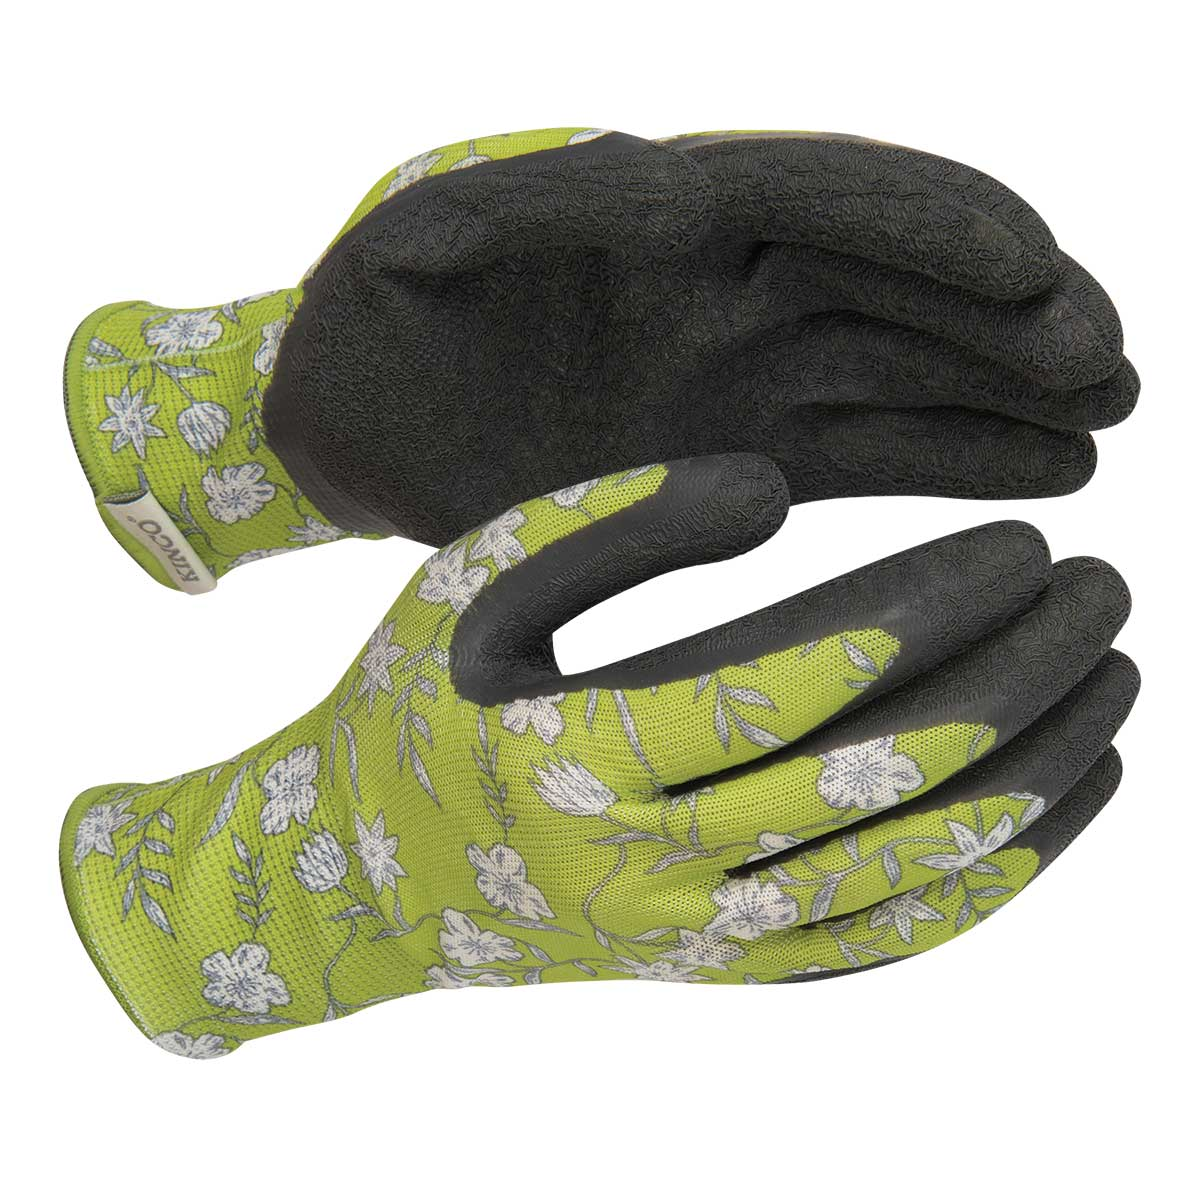 Kinco Women's Latex-Coated Knit Gloves